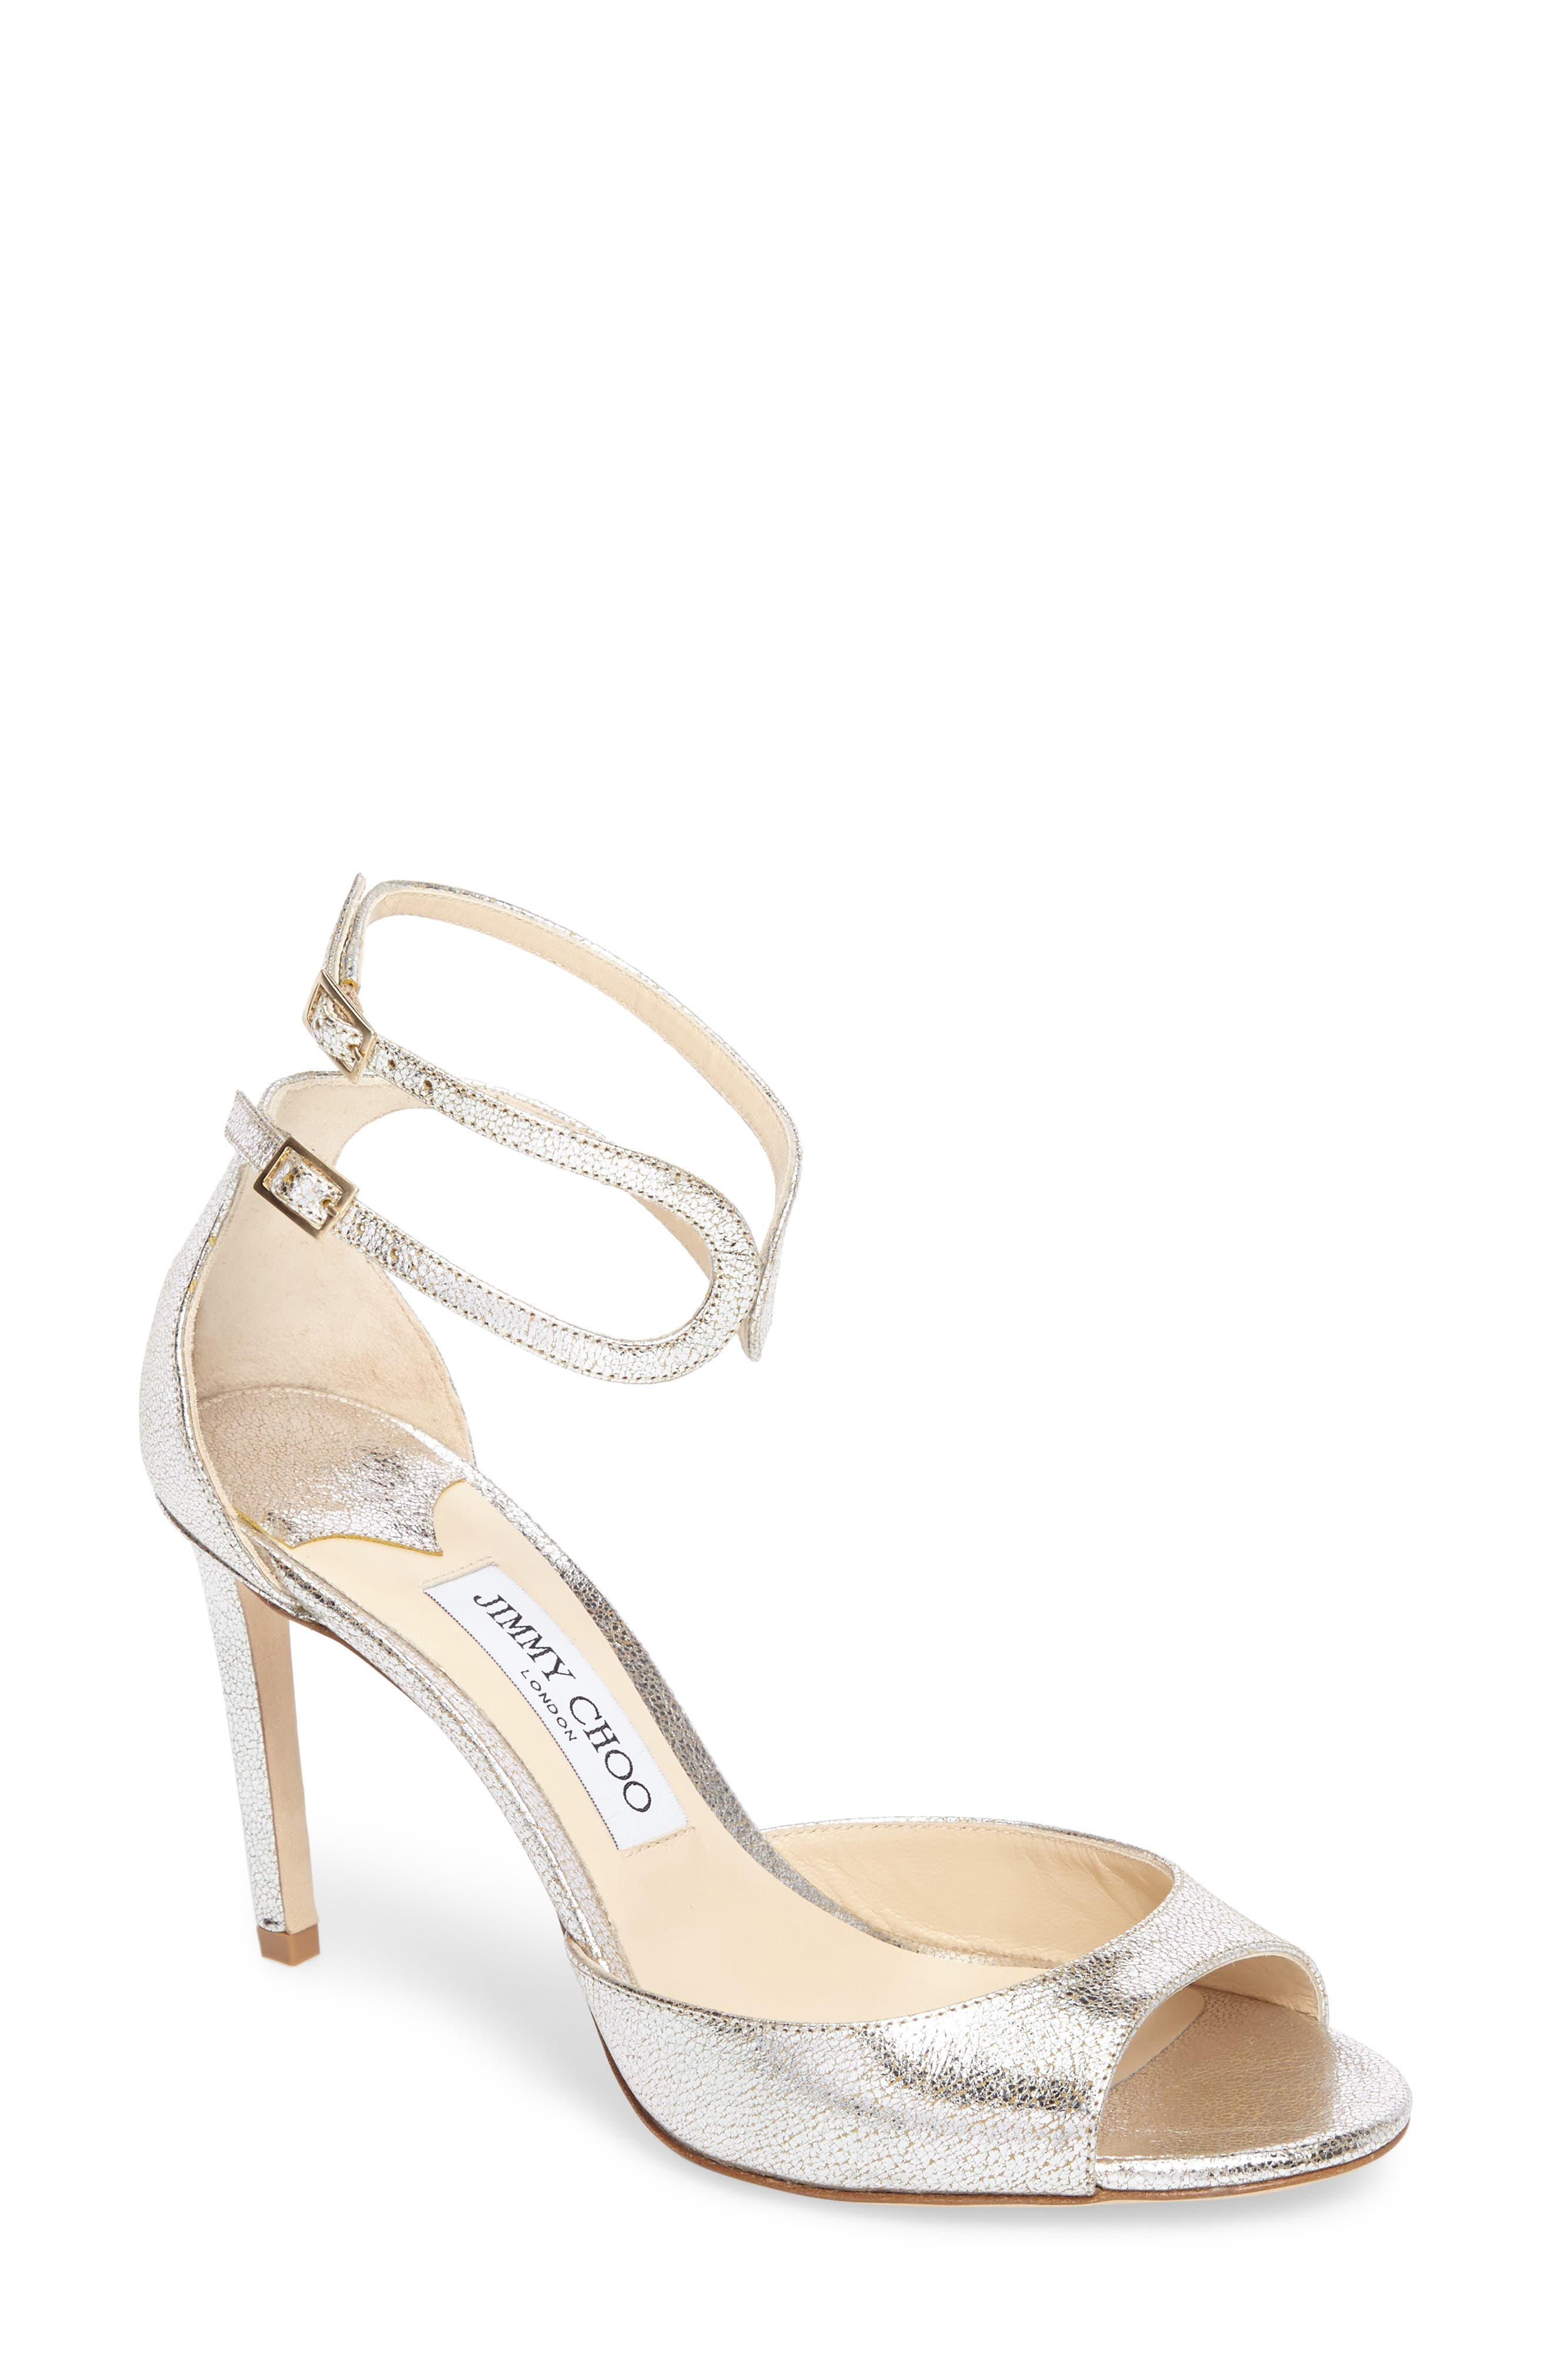 Main Image - Jimmy Choo Lane d'Orsay Sandal (Women)